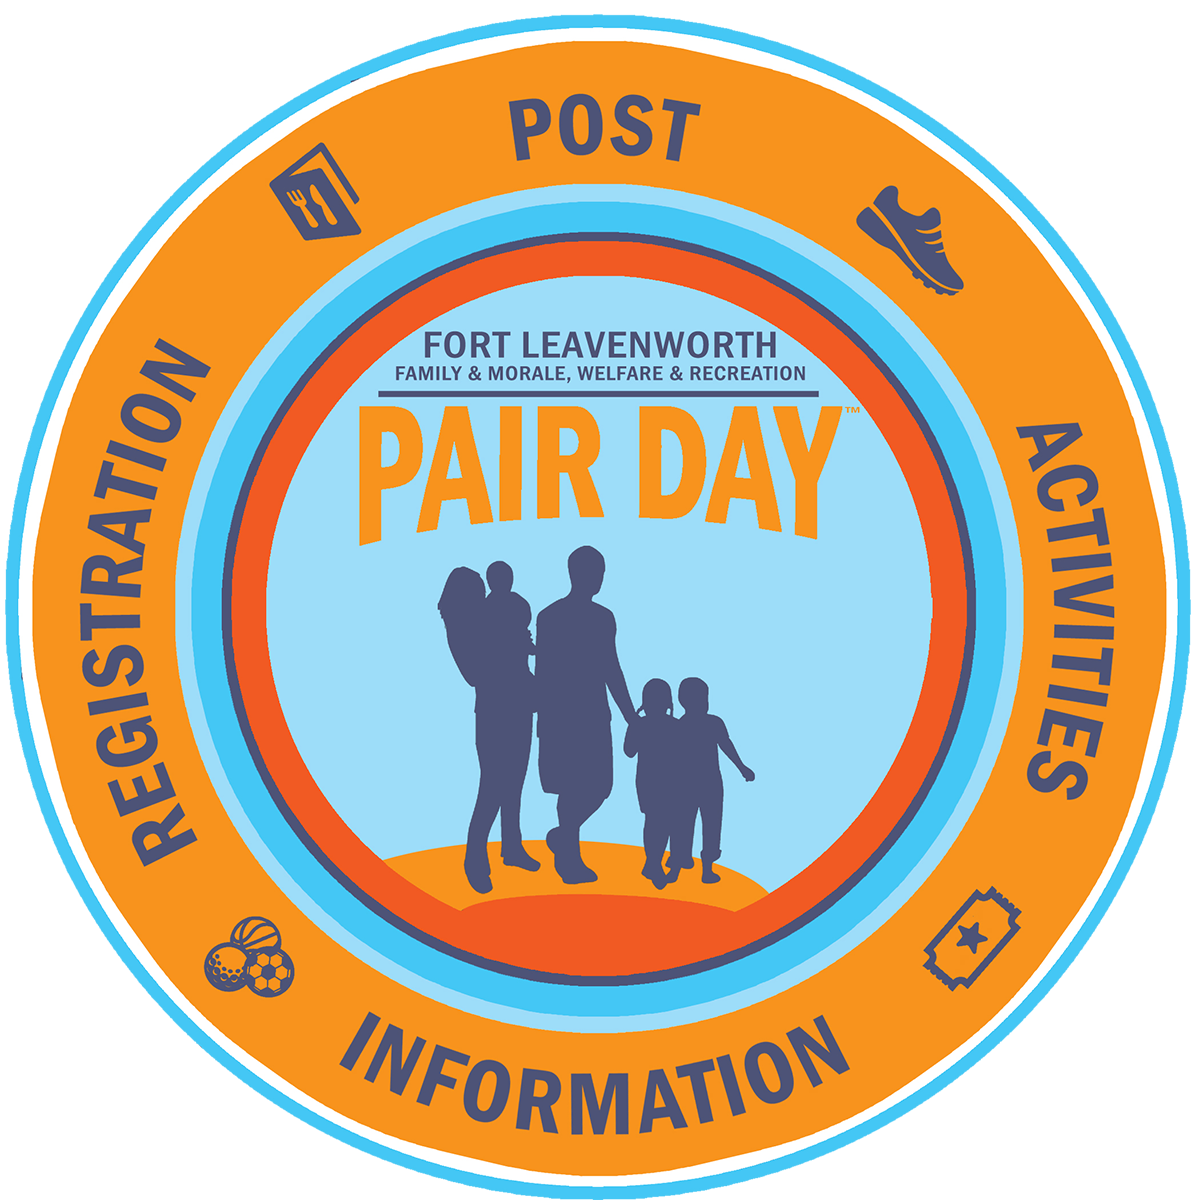 P.A.I.R. Day